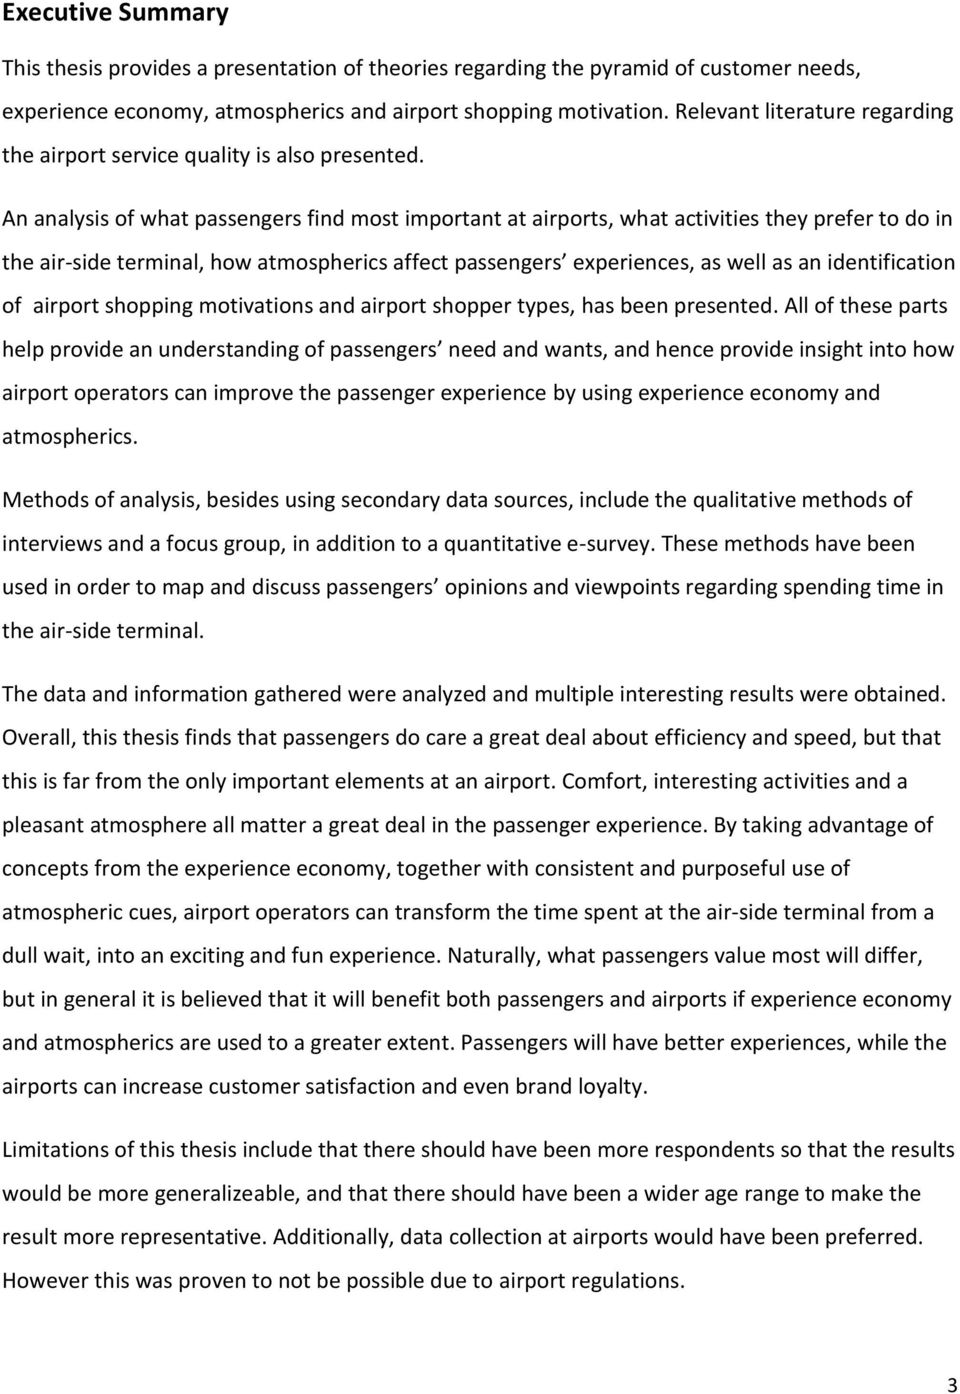 An analysis of what passengers find most important at airports, what activities they prefer to do in the air-side terminal, how atmospherics affect passengers experiences, as well as an